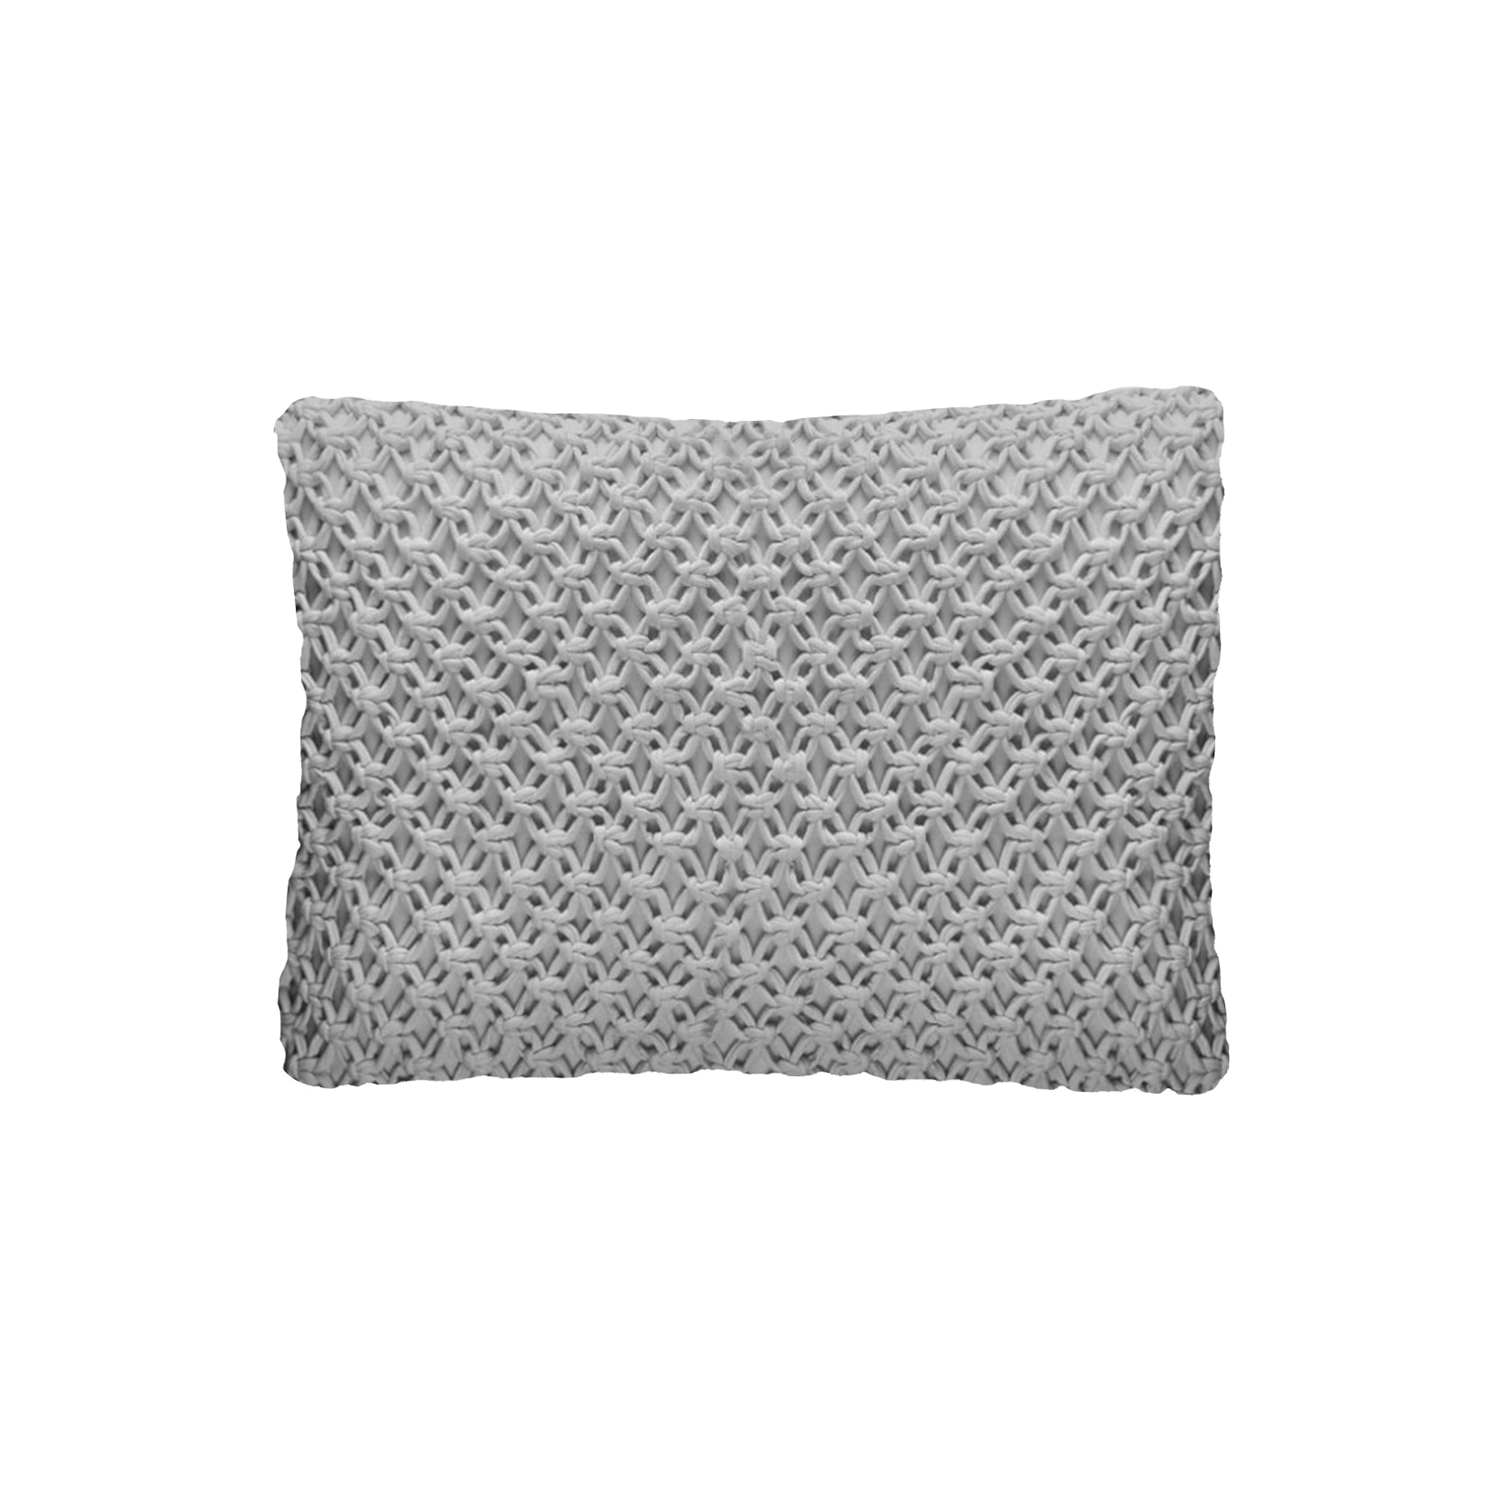 Macrame Knitted Cotton Cushion Large - The Macrame Line is carefully knitted within a trained community of women that found in their craft a way to provide for their families, each one of these cushions and throws is unique.  Elisa Atheniense Home soft indoors collection is made with natural cotton fibres, eco-friendly, handwoven or elaborated using traditional hand-loom techniques. The use of organic materials brings softness and comfort to the space. This collection combines their mission for responsible sourcing and manufacturing.  The hand woven cotton, washable cushion cover is made in Brazil and the inner cushion is made in the UK. All cushions come with Hollow Fibre filling. European Duck Feathers are optional upon request at an extra cost. Please enquire for more information and see colour chart for reference.   | Matter of Stuff